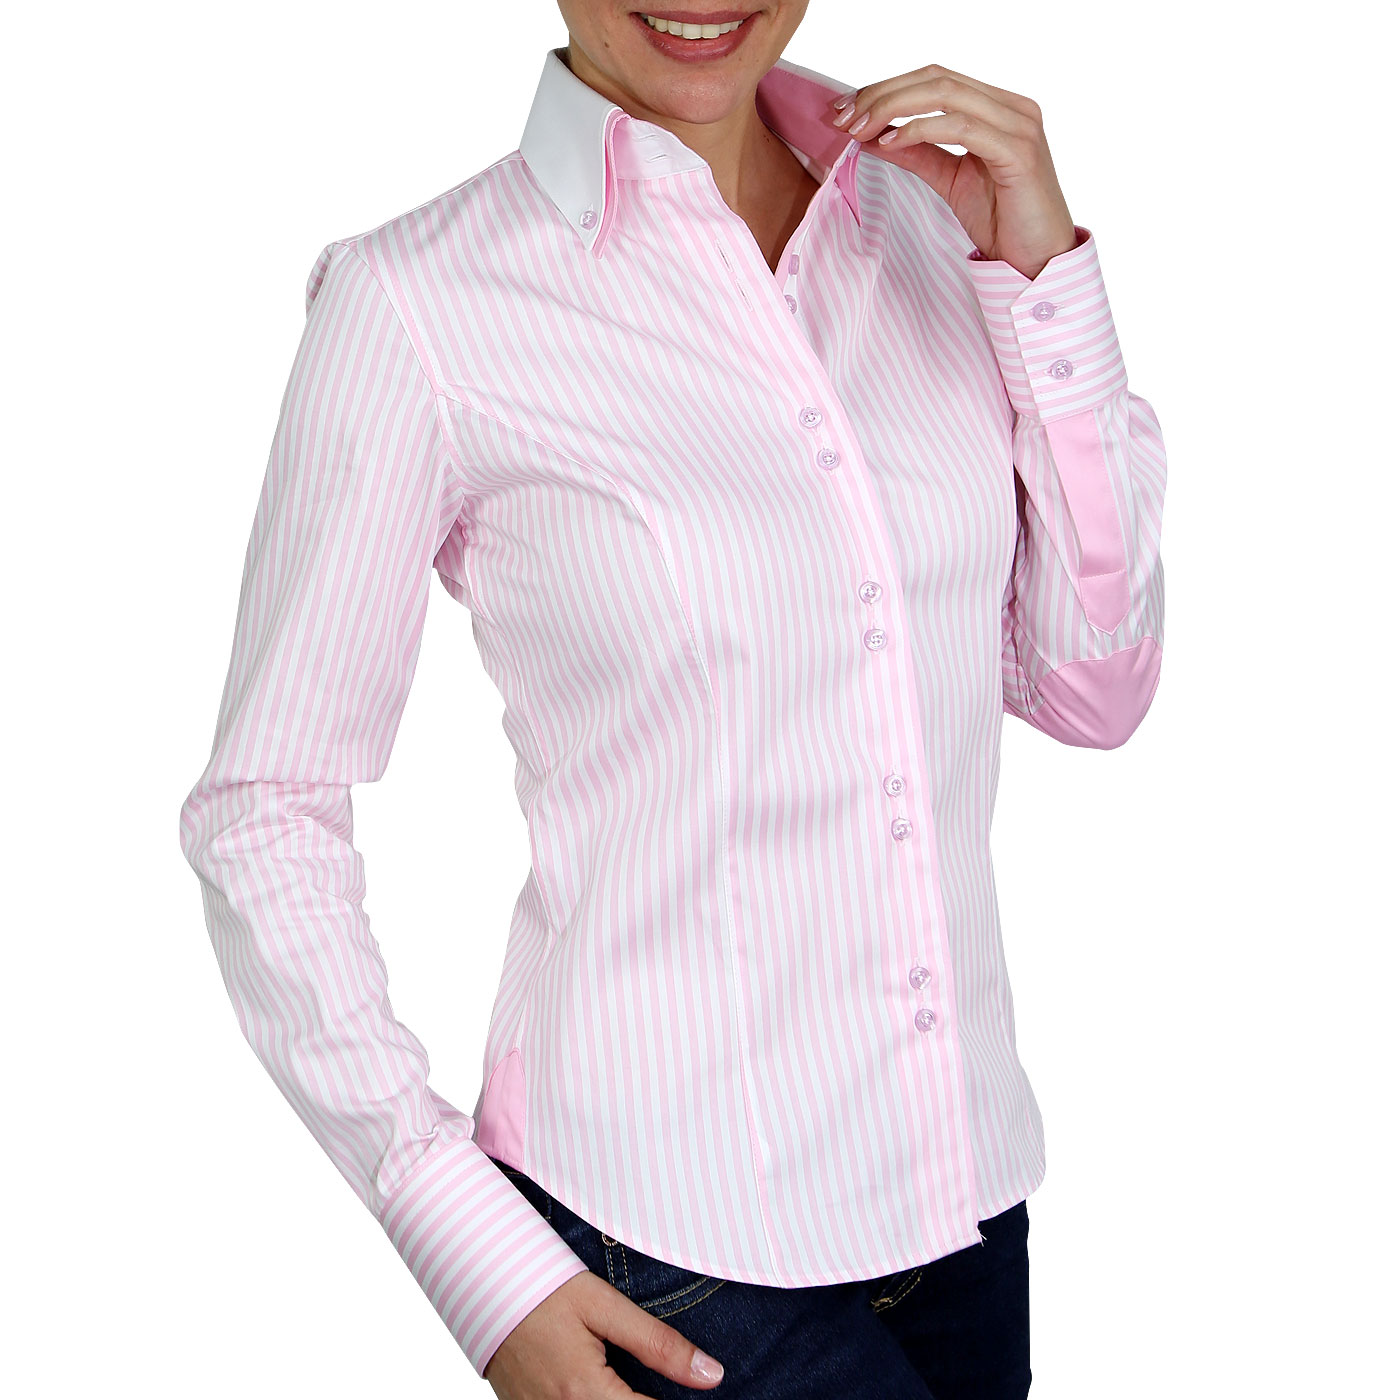 Italian shirt for women Exclusive models Webmenshirts